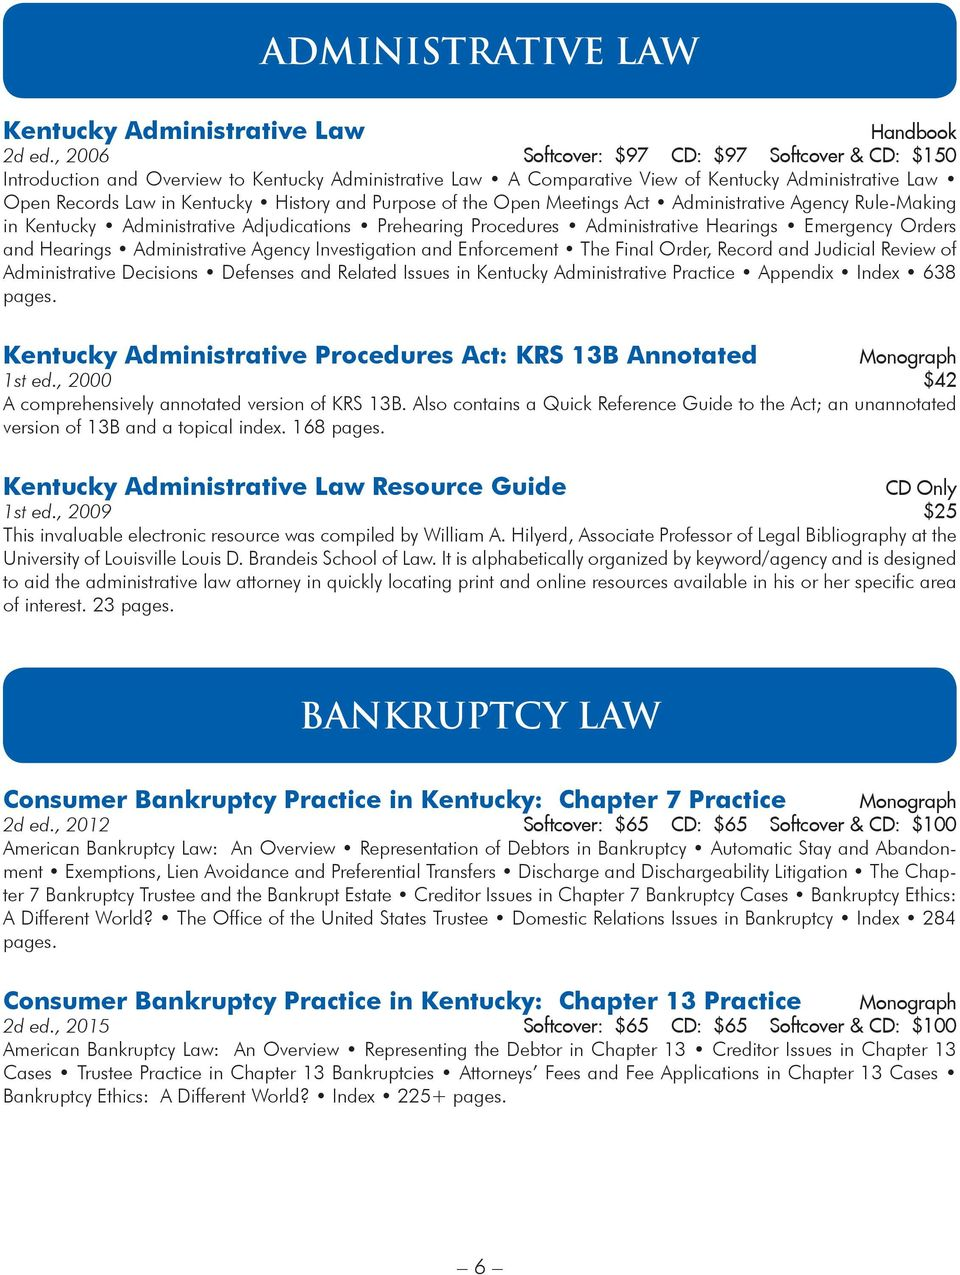 Purpose of the Open Meetings Act Administrative Agency Rule-Making in Kentucky Administrative Adjudications Prehearing Procedures Administrative Hearings Emergency Orders and Hearings Administrative